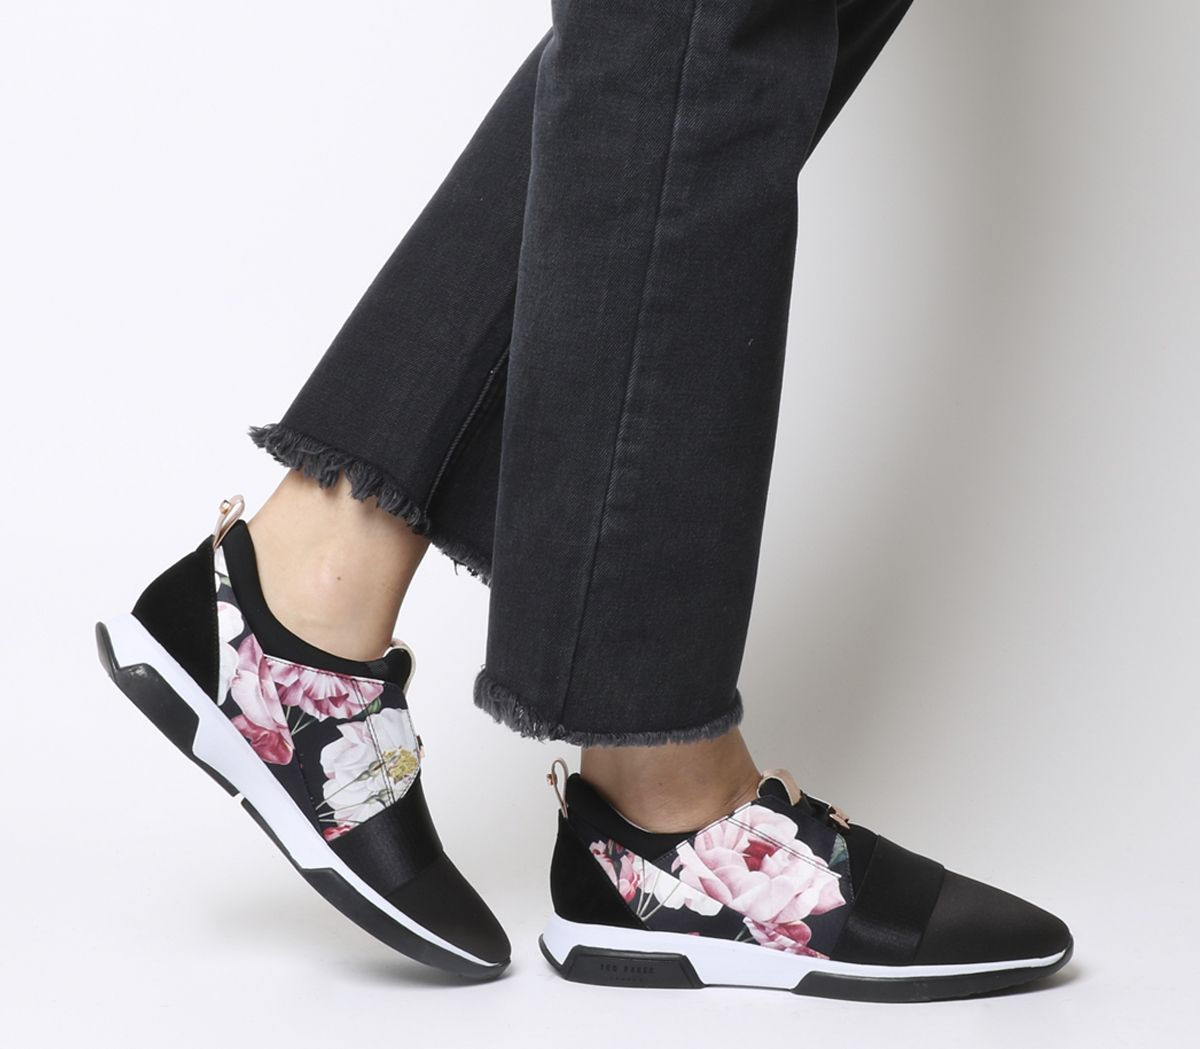 7612b9498 Ted Baker Cepap 2 Trainers Iguazu Black - Hers trainers